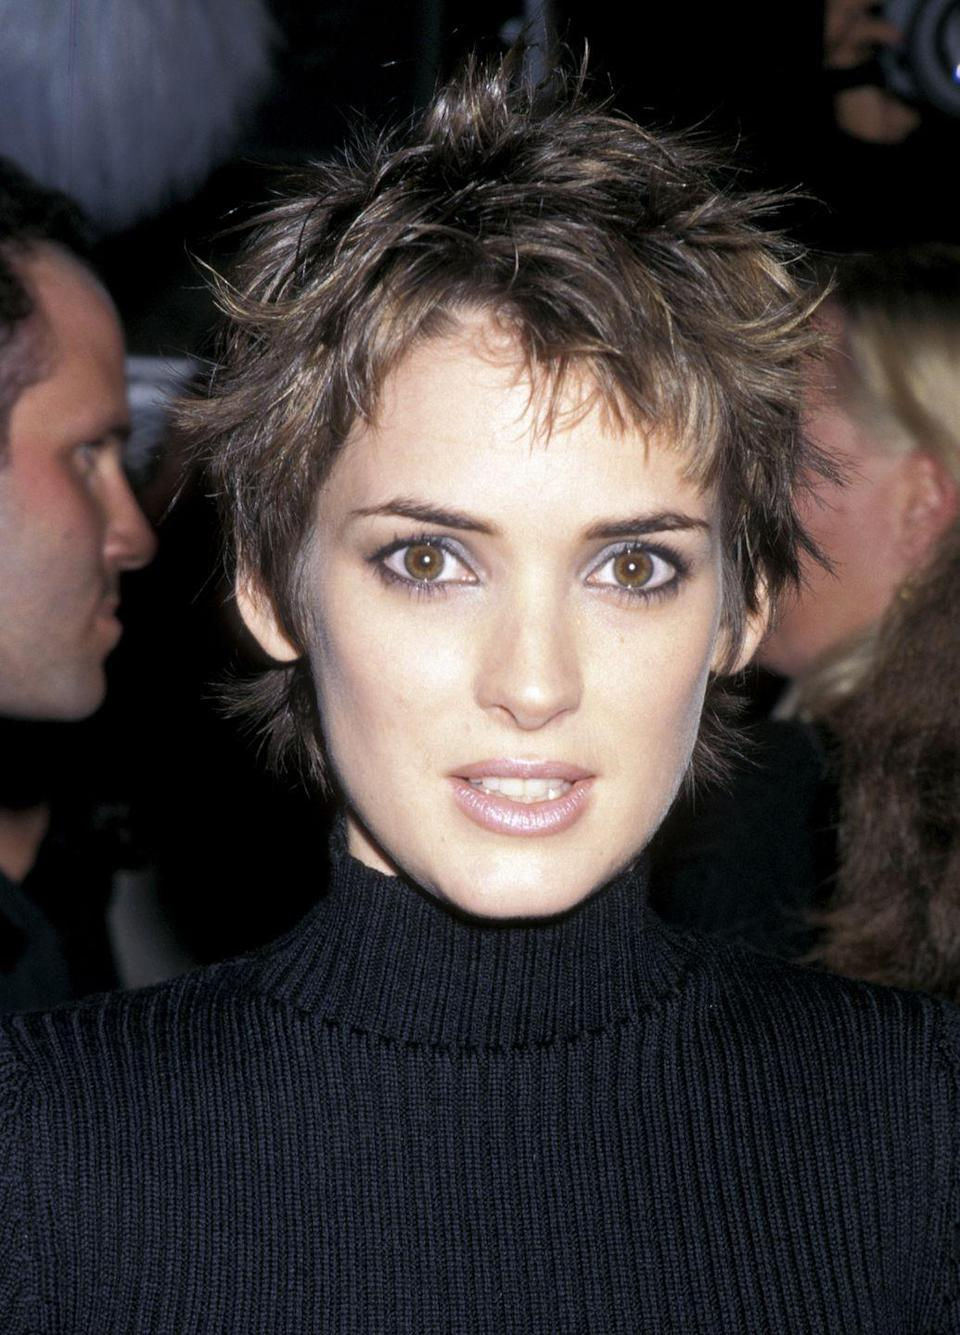 <p>The '90s saw a chic, edgy style of pixie come into focus after Winona Ryder debuted her cool look in 1997.</p>